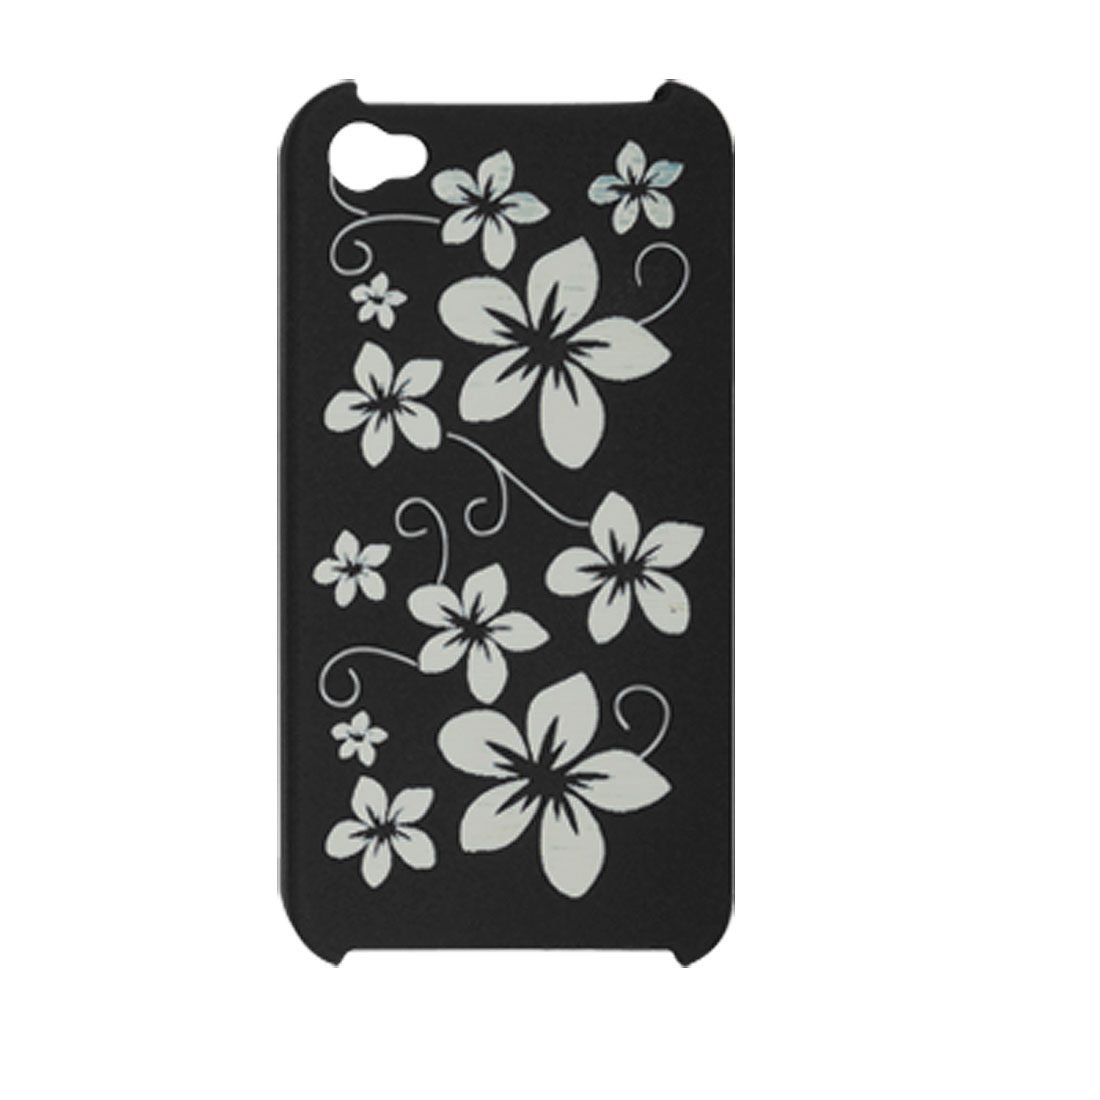 White Flower Printed Black Hard Plastic Back Case for iPhone 4 4G